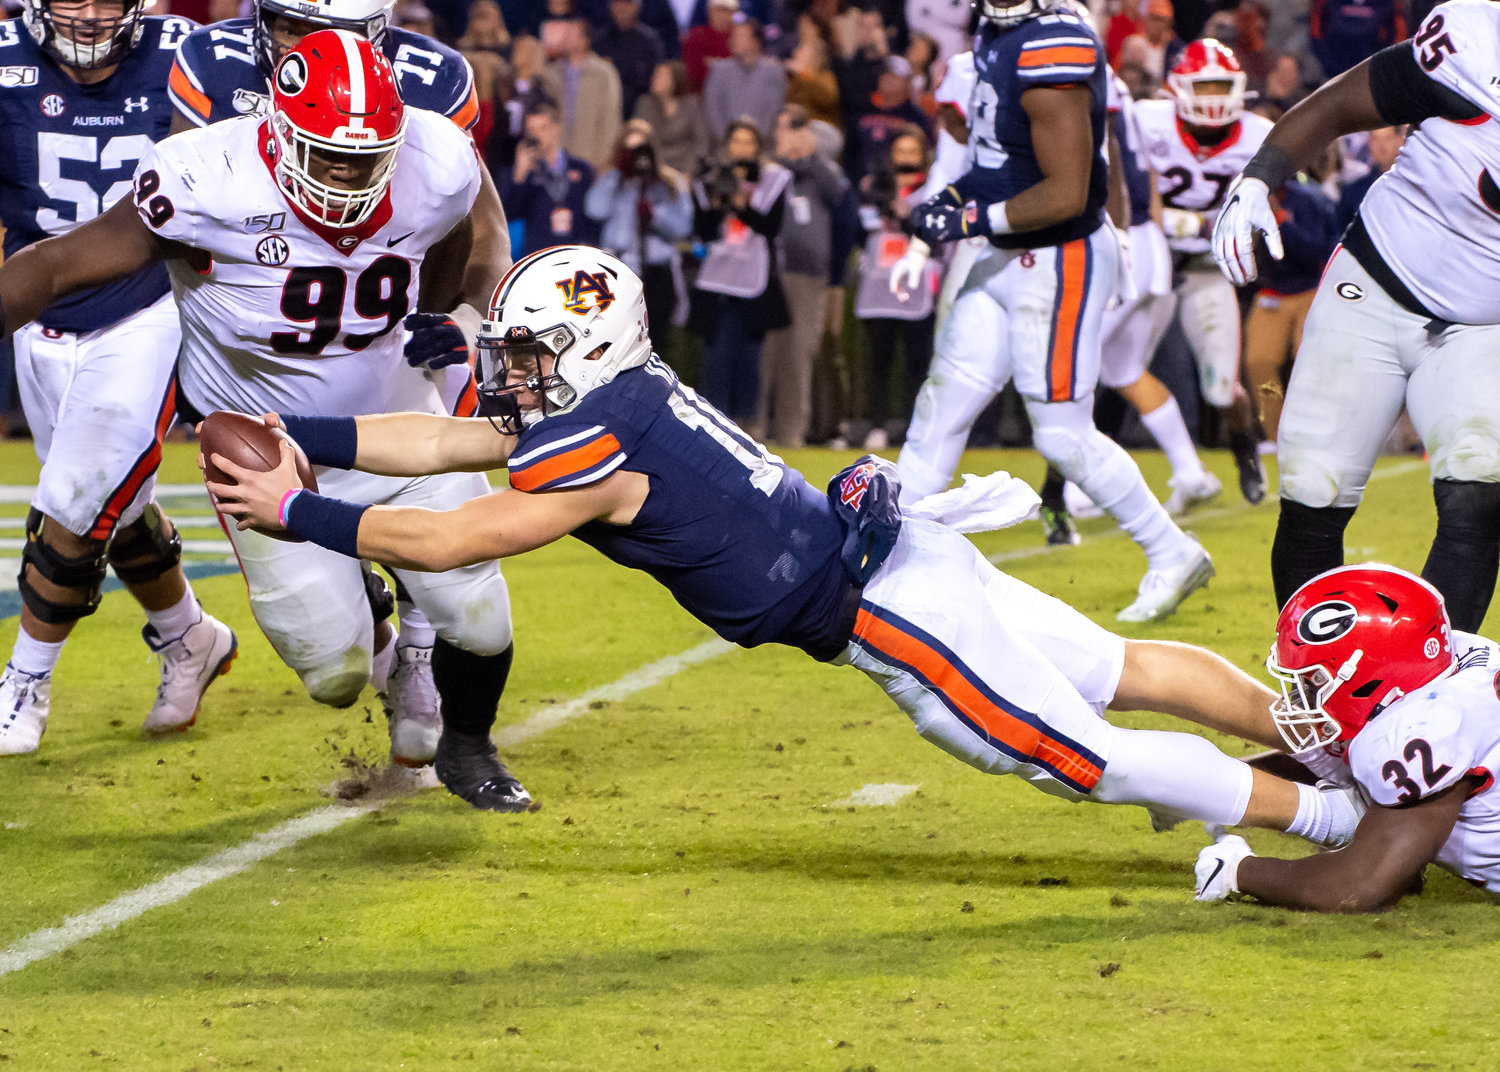 Auburn Tigers quarterback Bo Nix (10)dives for a score during the second half of Saturday's game, at Jordan-Hare Stadium in Auburn,, AL. Daily Mountain Eagle -  Jeff Johnsey